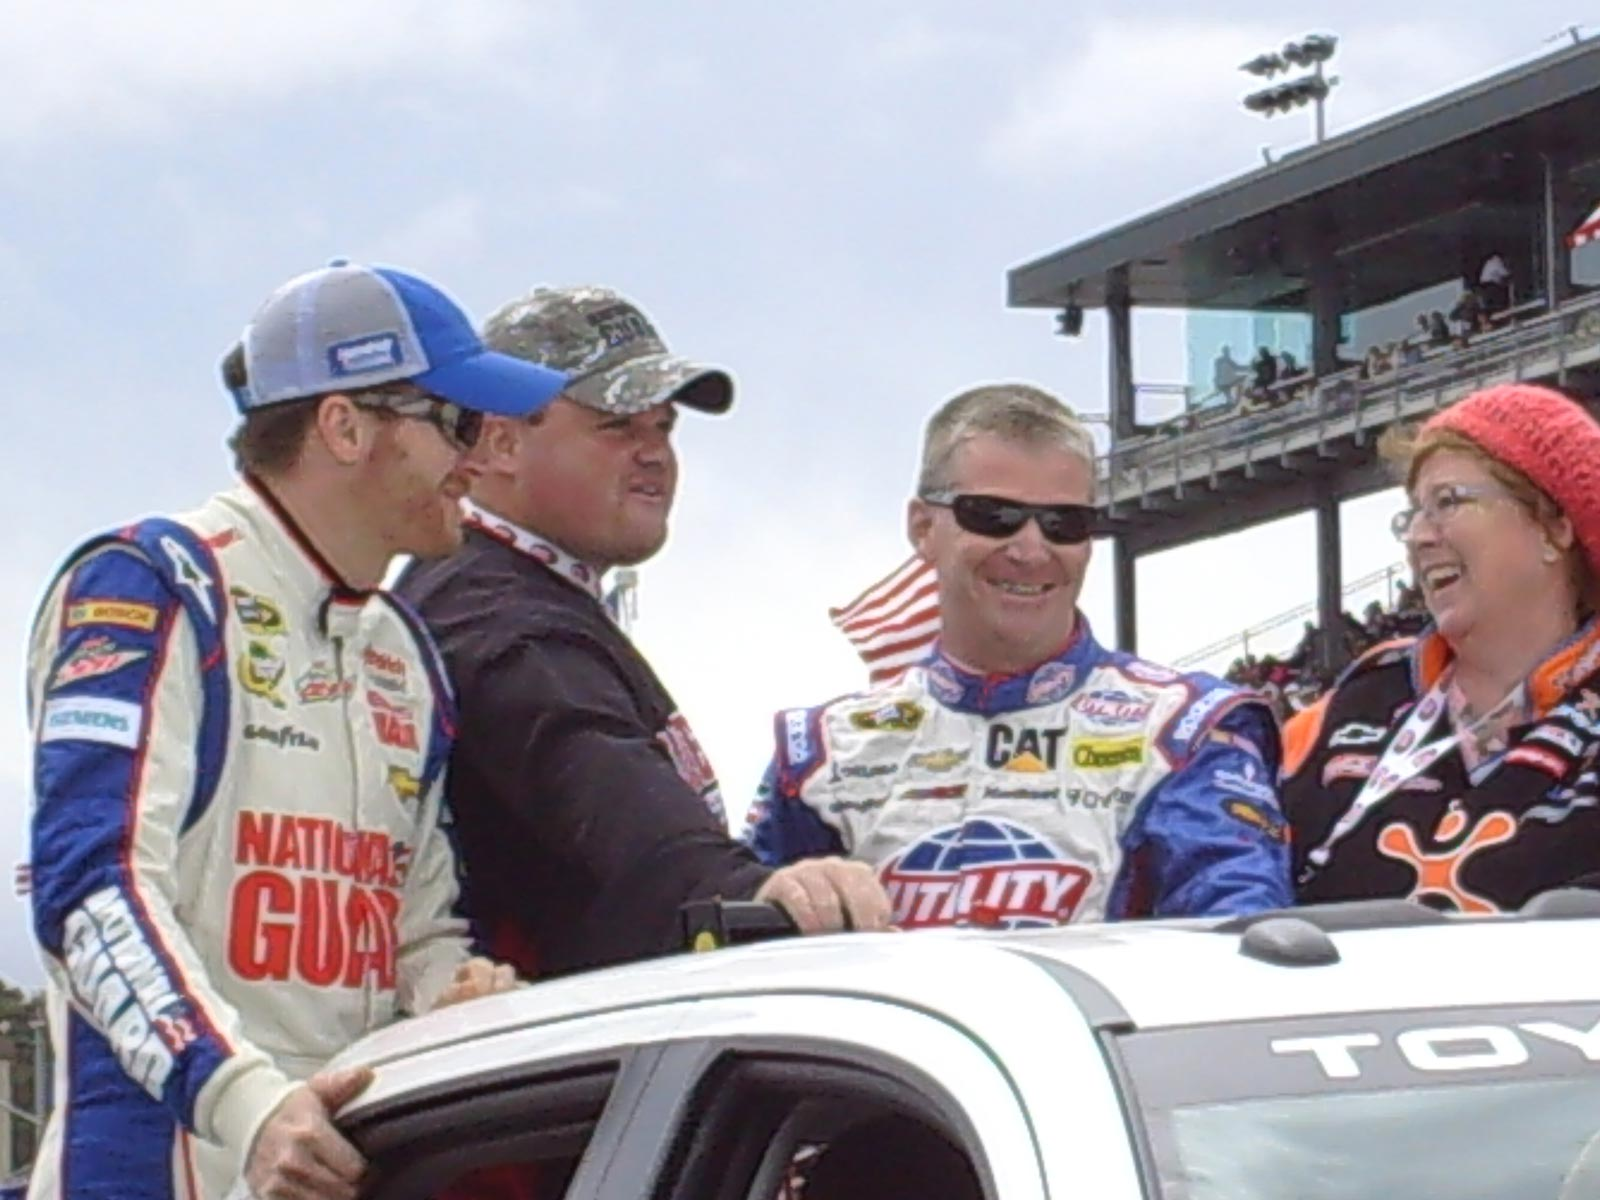 sonoma-sunday-dale-earnhardt-jr-jeff-burton